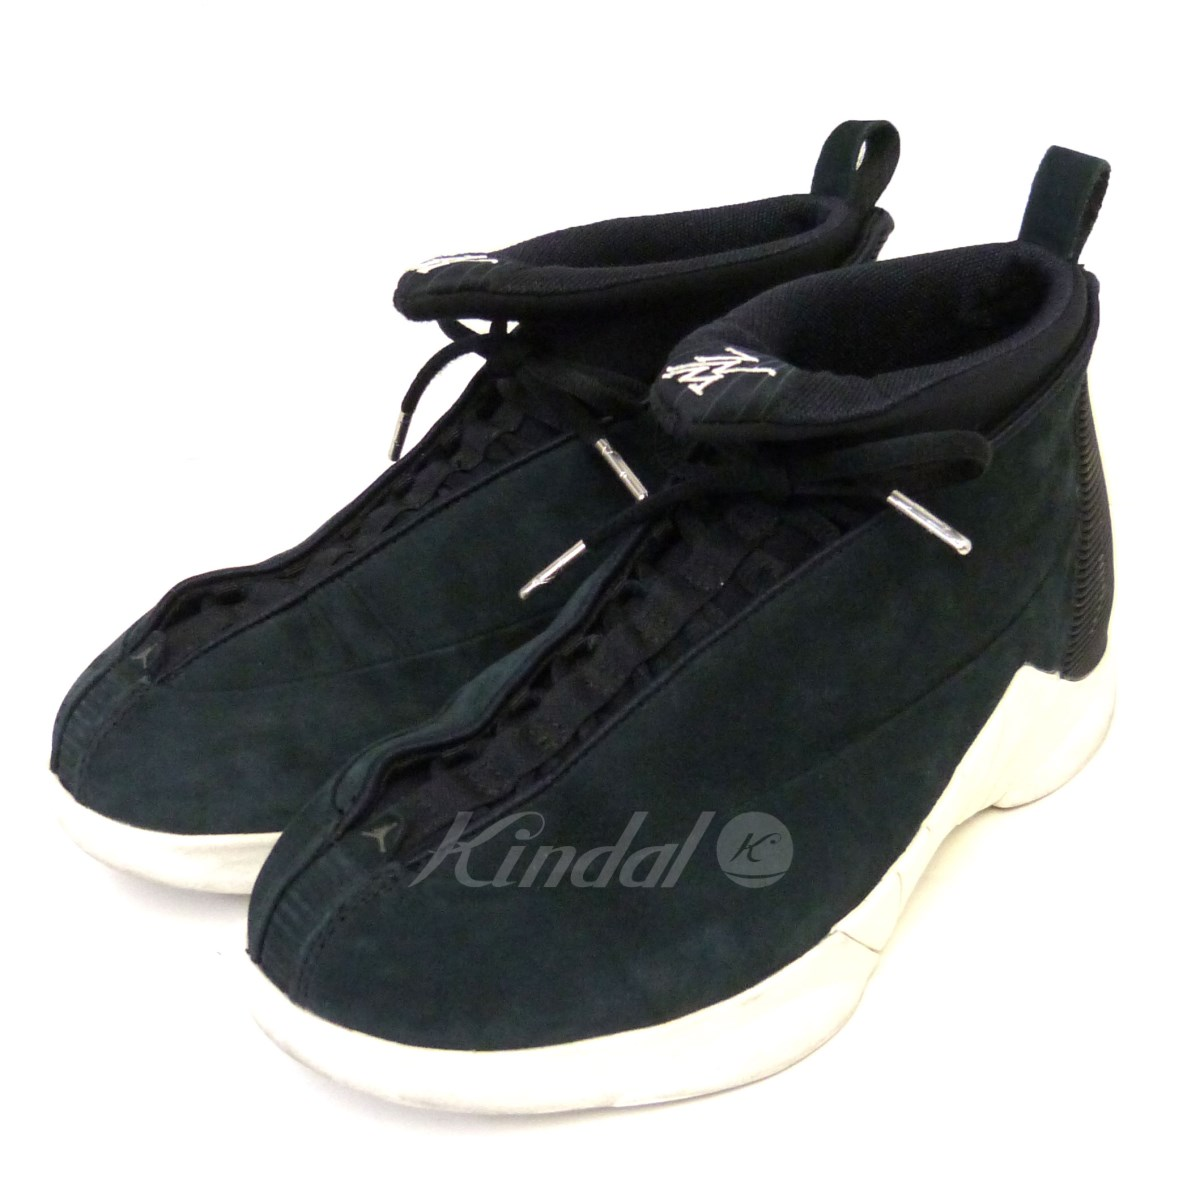 f594b66d356 kindal: NIKE X PSNY AIR JORDAN15 RETRO sneakers | Rakuten Global Market